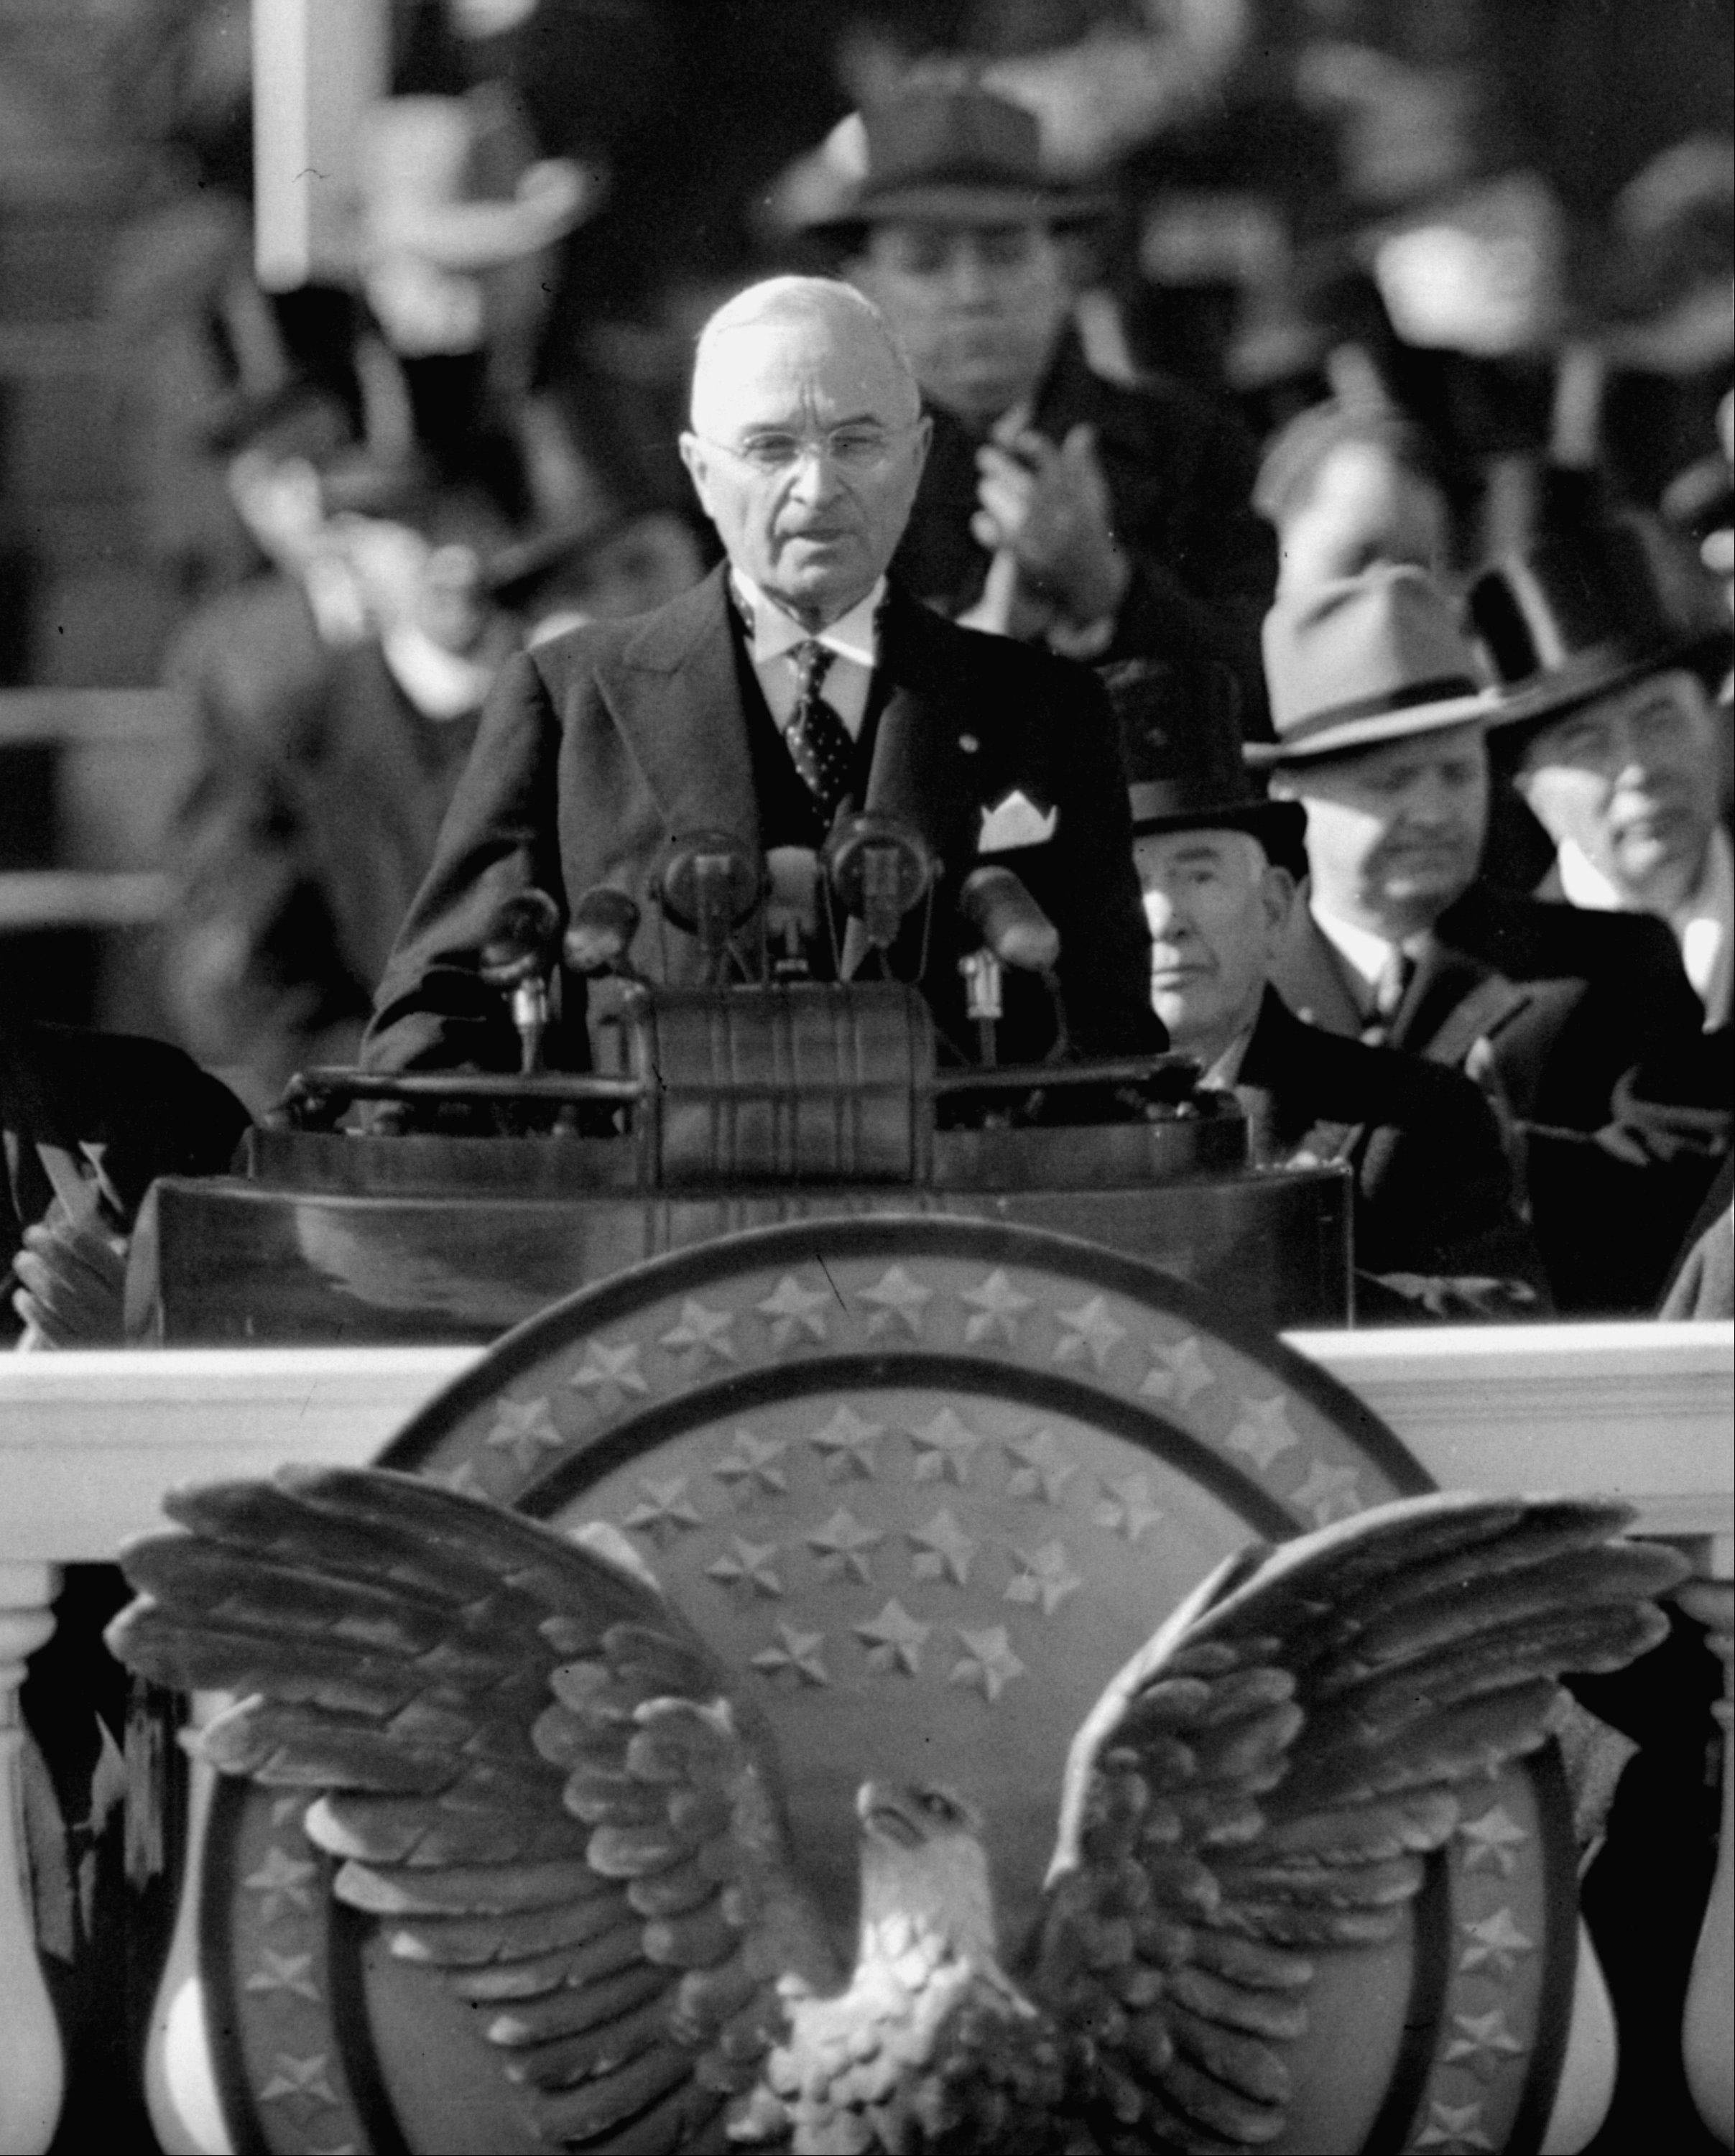 President Harry S. Truman delivers inaugural address from Capitol portico, January 20, 1949, after taking oath of office for his first full term as chief executive.